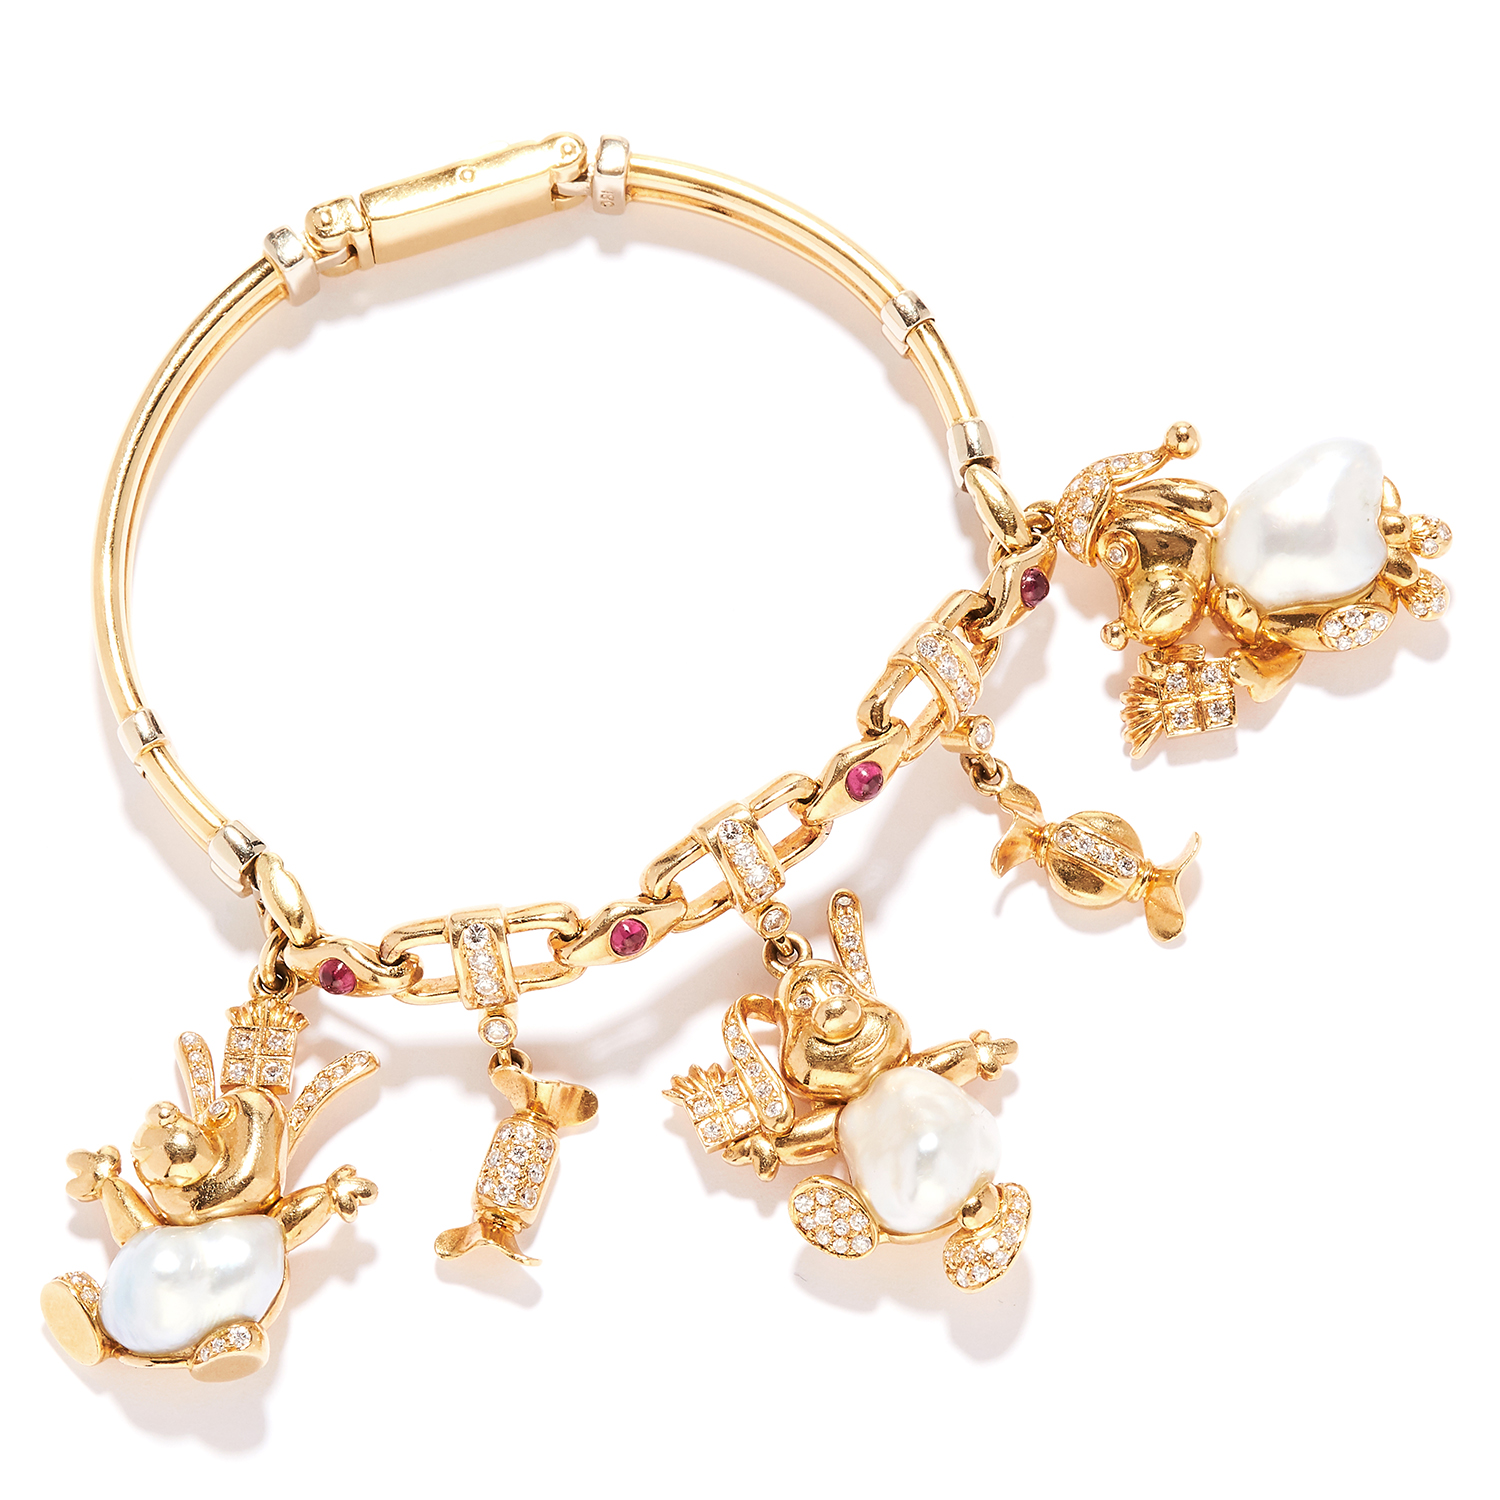 PEARL, RUBY AND DIAMOND CHARM BRACELET in 18ct yellow gold, the fancy link bracelet suspending